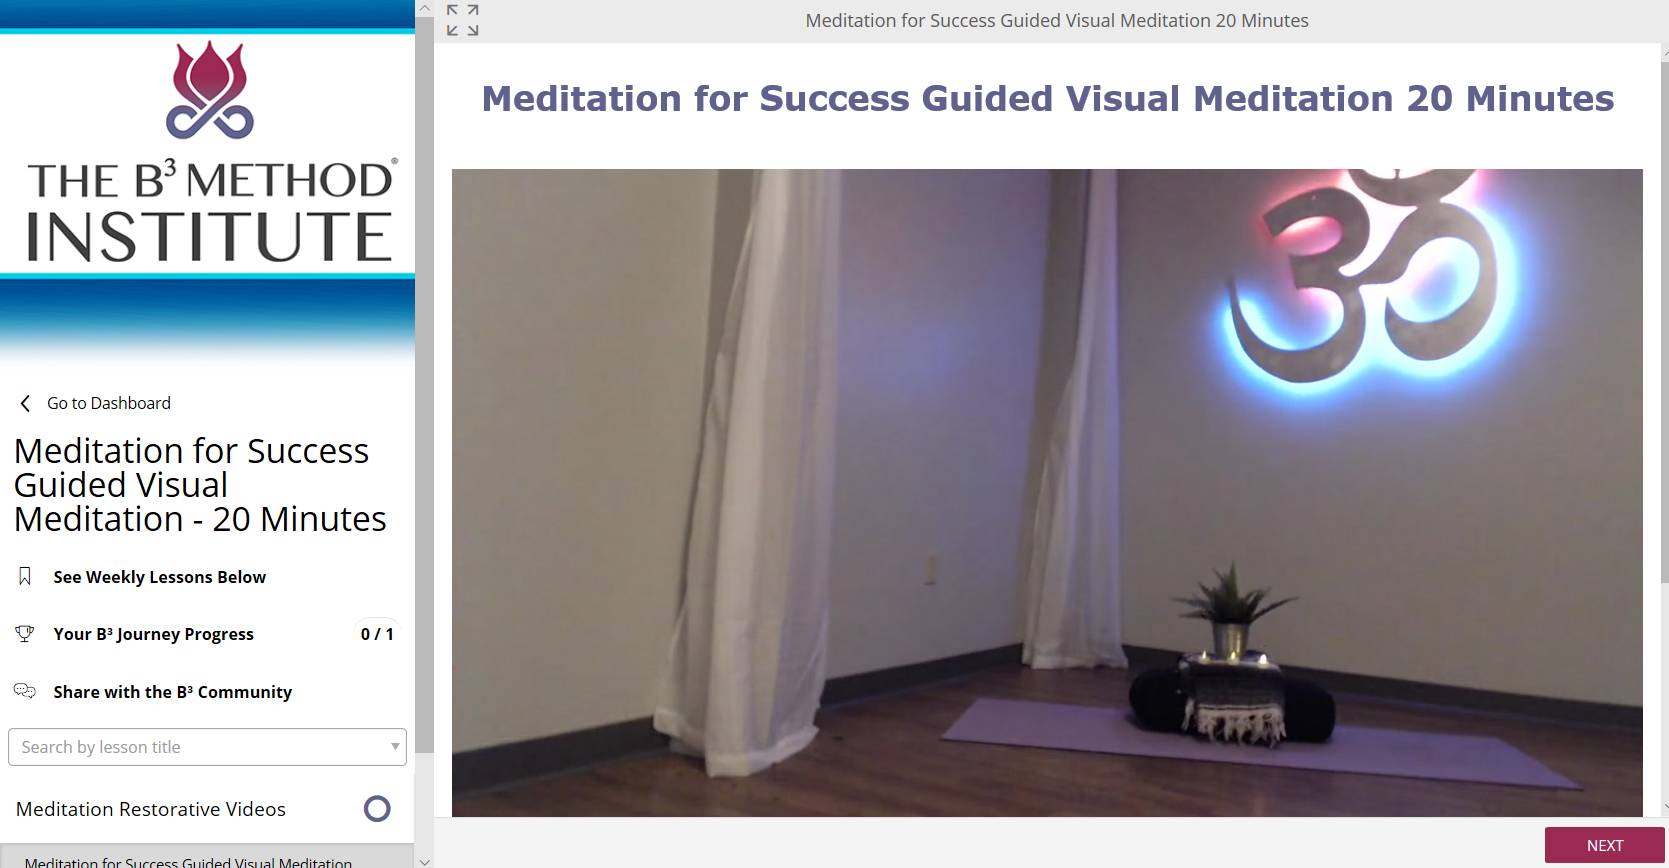 MeditationVideos - 10-45 Minute Resorative Meditations Videos